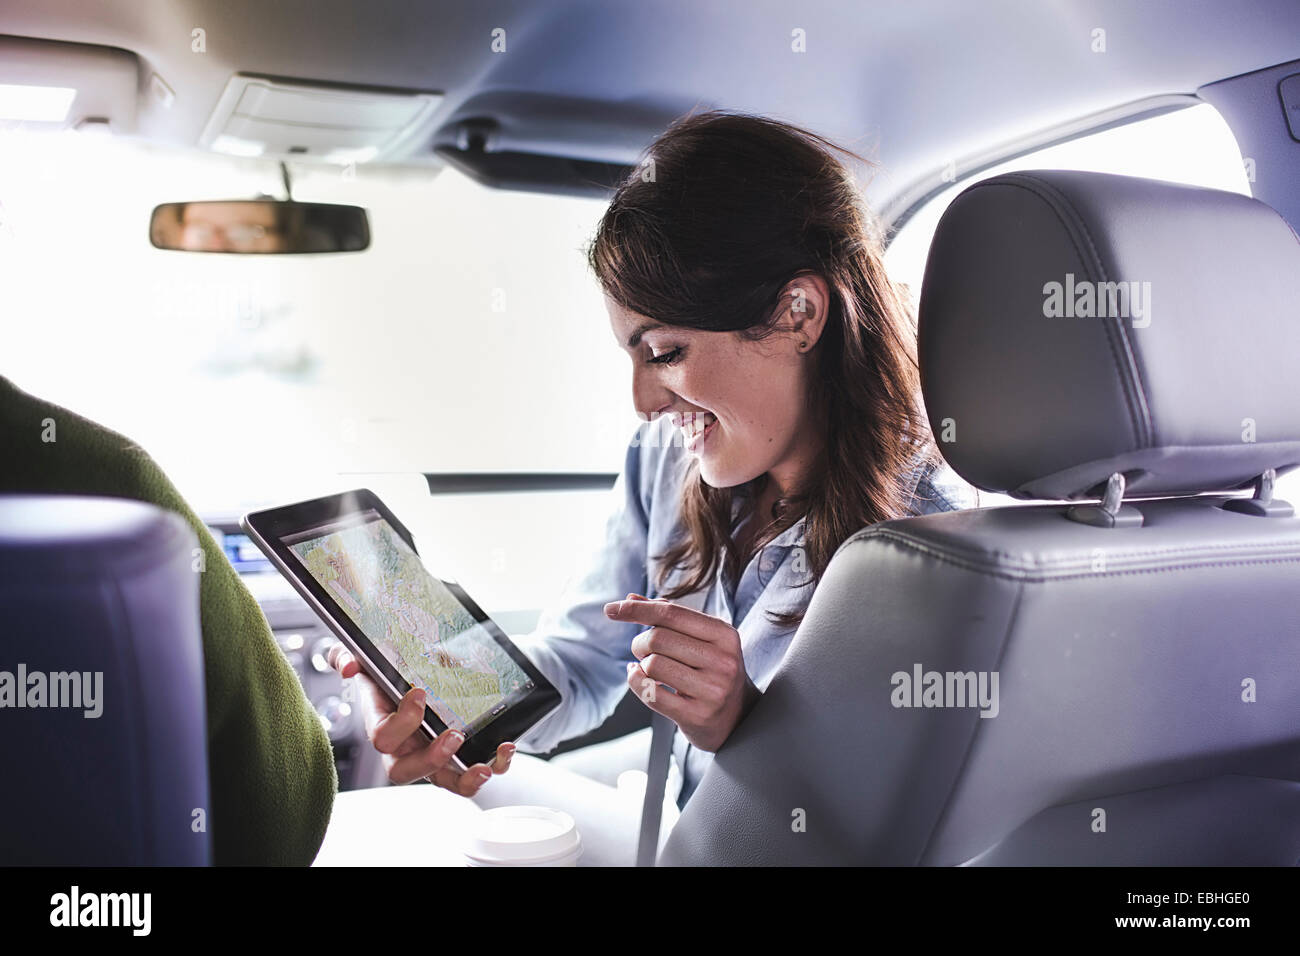 Over shoulder view of young woman in car front seat using digital tablet map - Stock Image